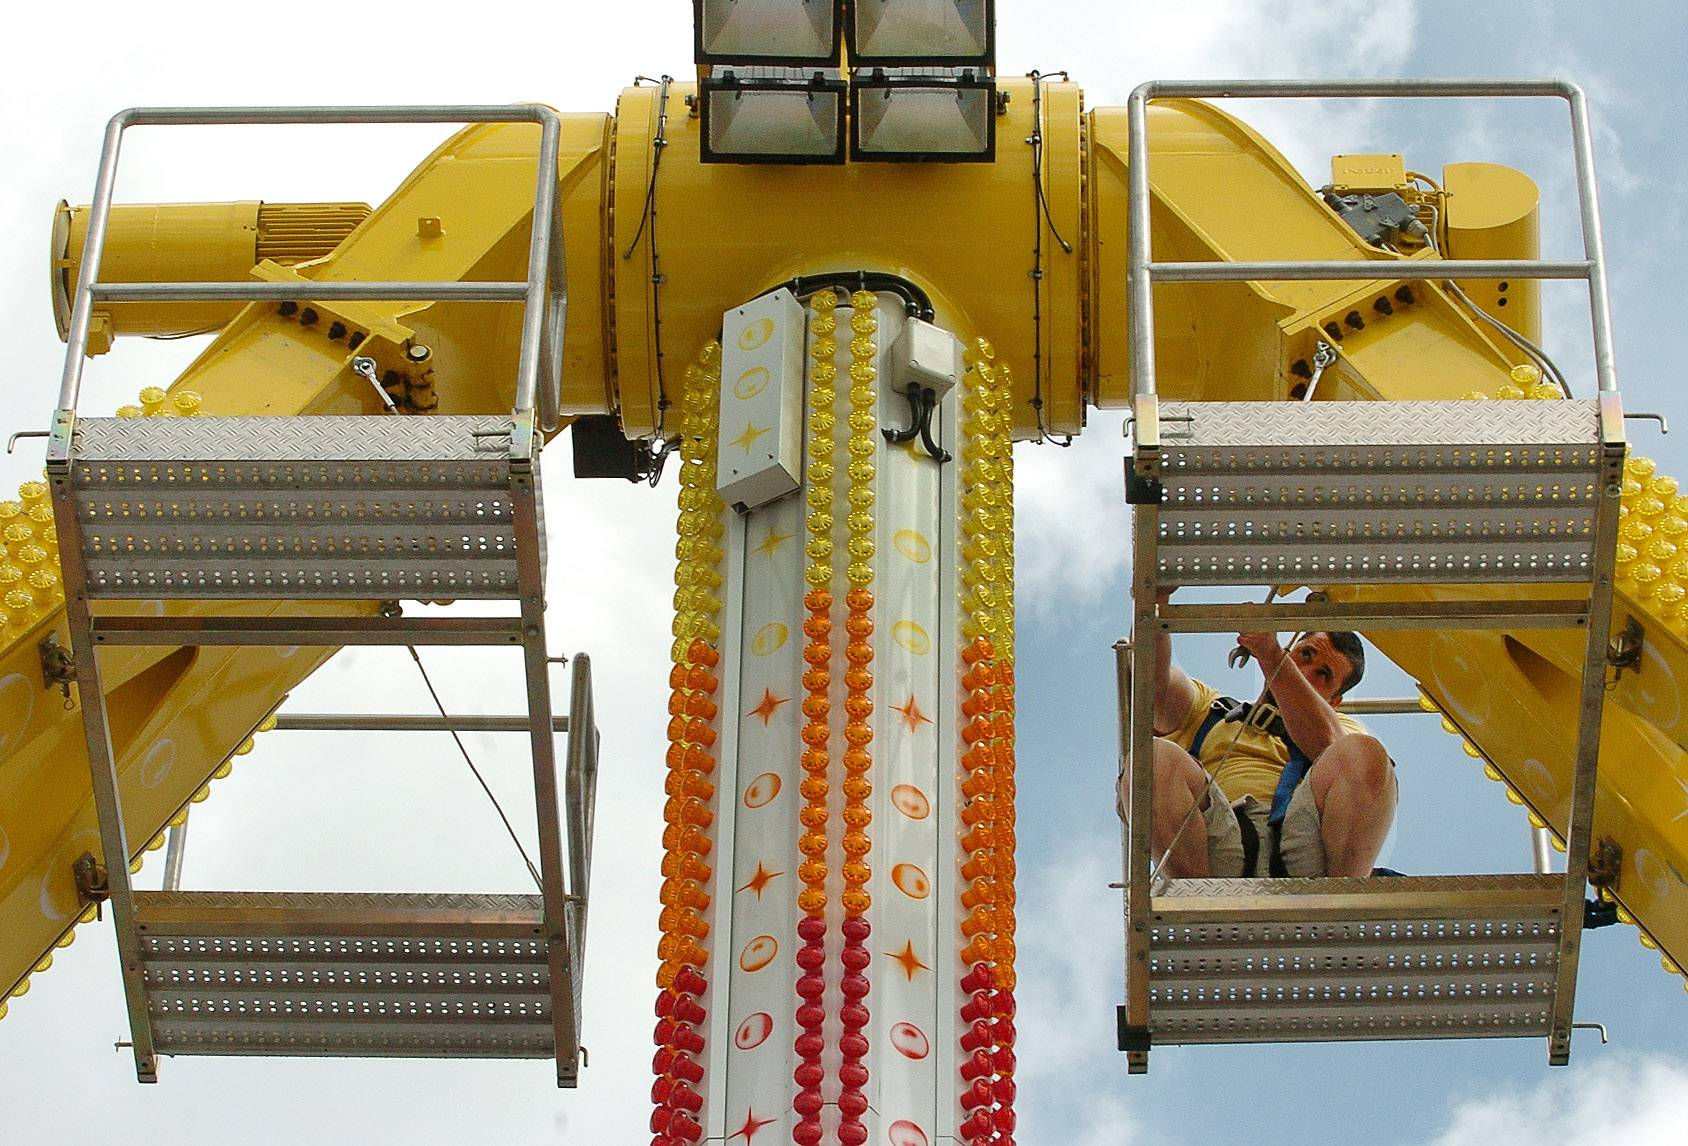 Vincent Bayman tightens bolts on the Freakout ride, preparing for Thursday's opening of the Mount Prospect Jaycees Memorial Day Carnival. The event, returning from a three-year hiatus, is being held in the parking lot of the Mount Prospect Plaza at Central and Rand roads.